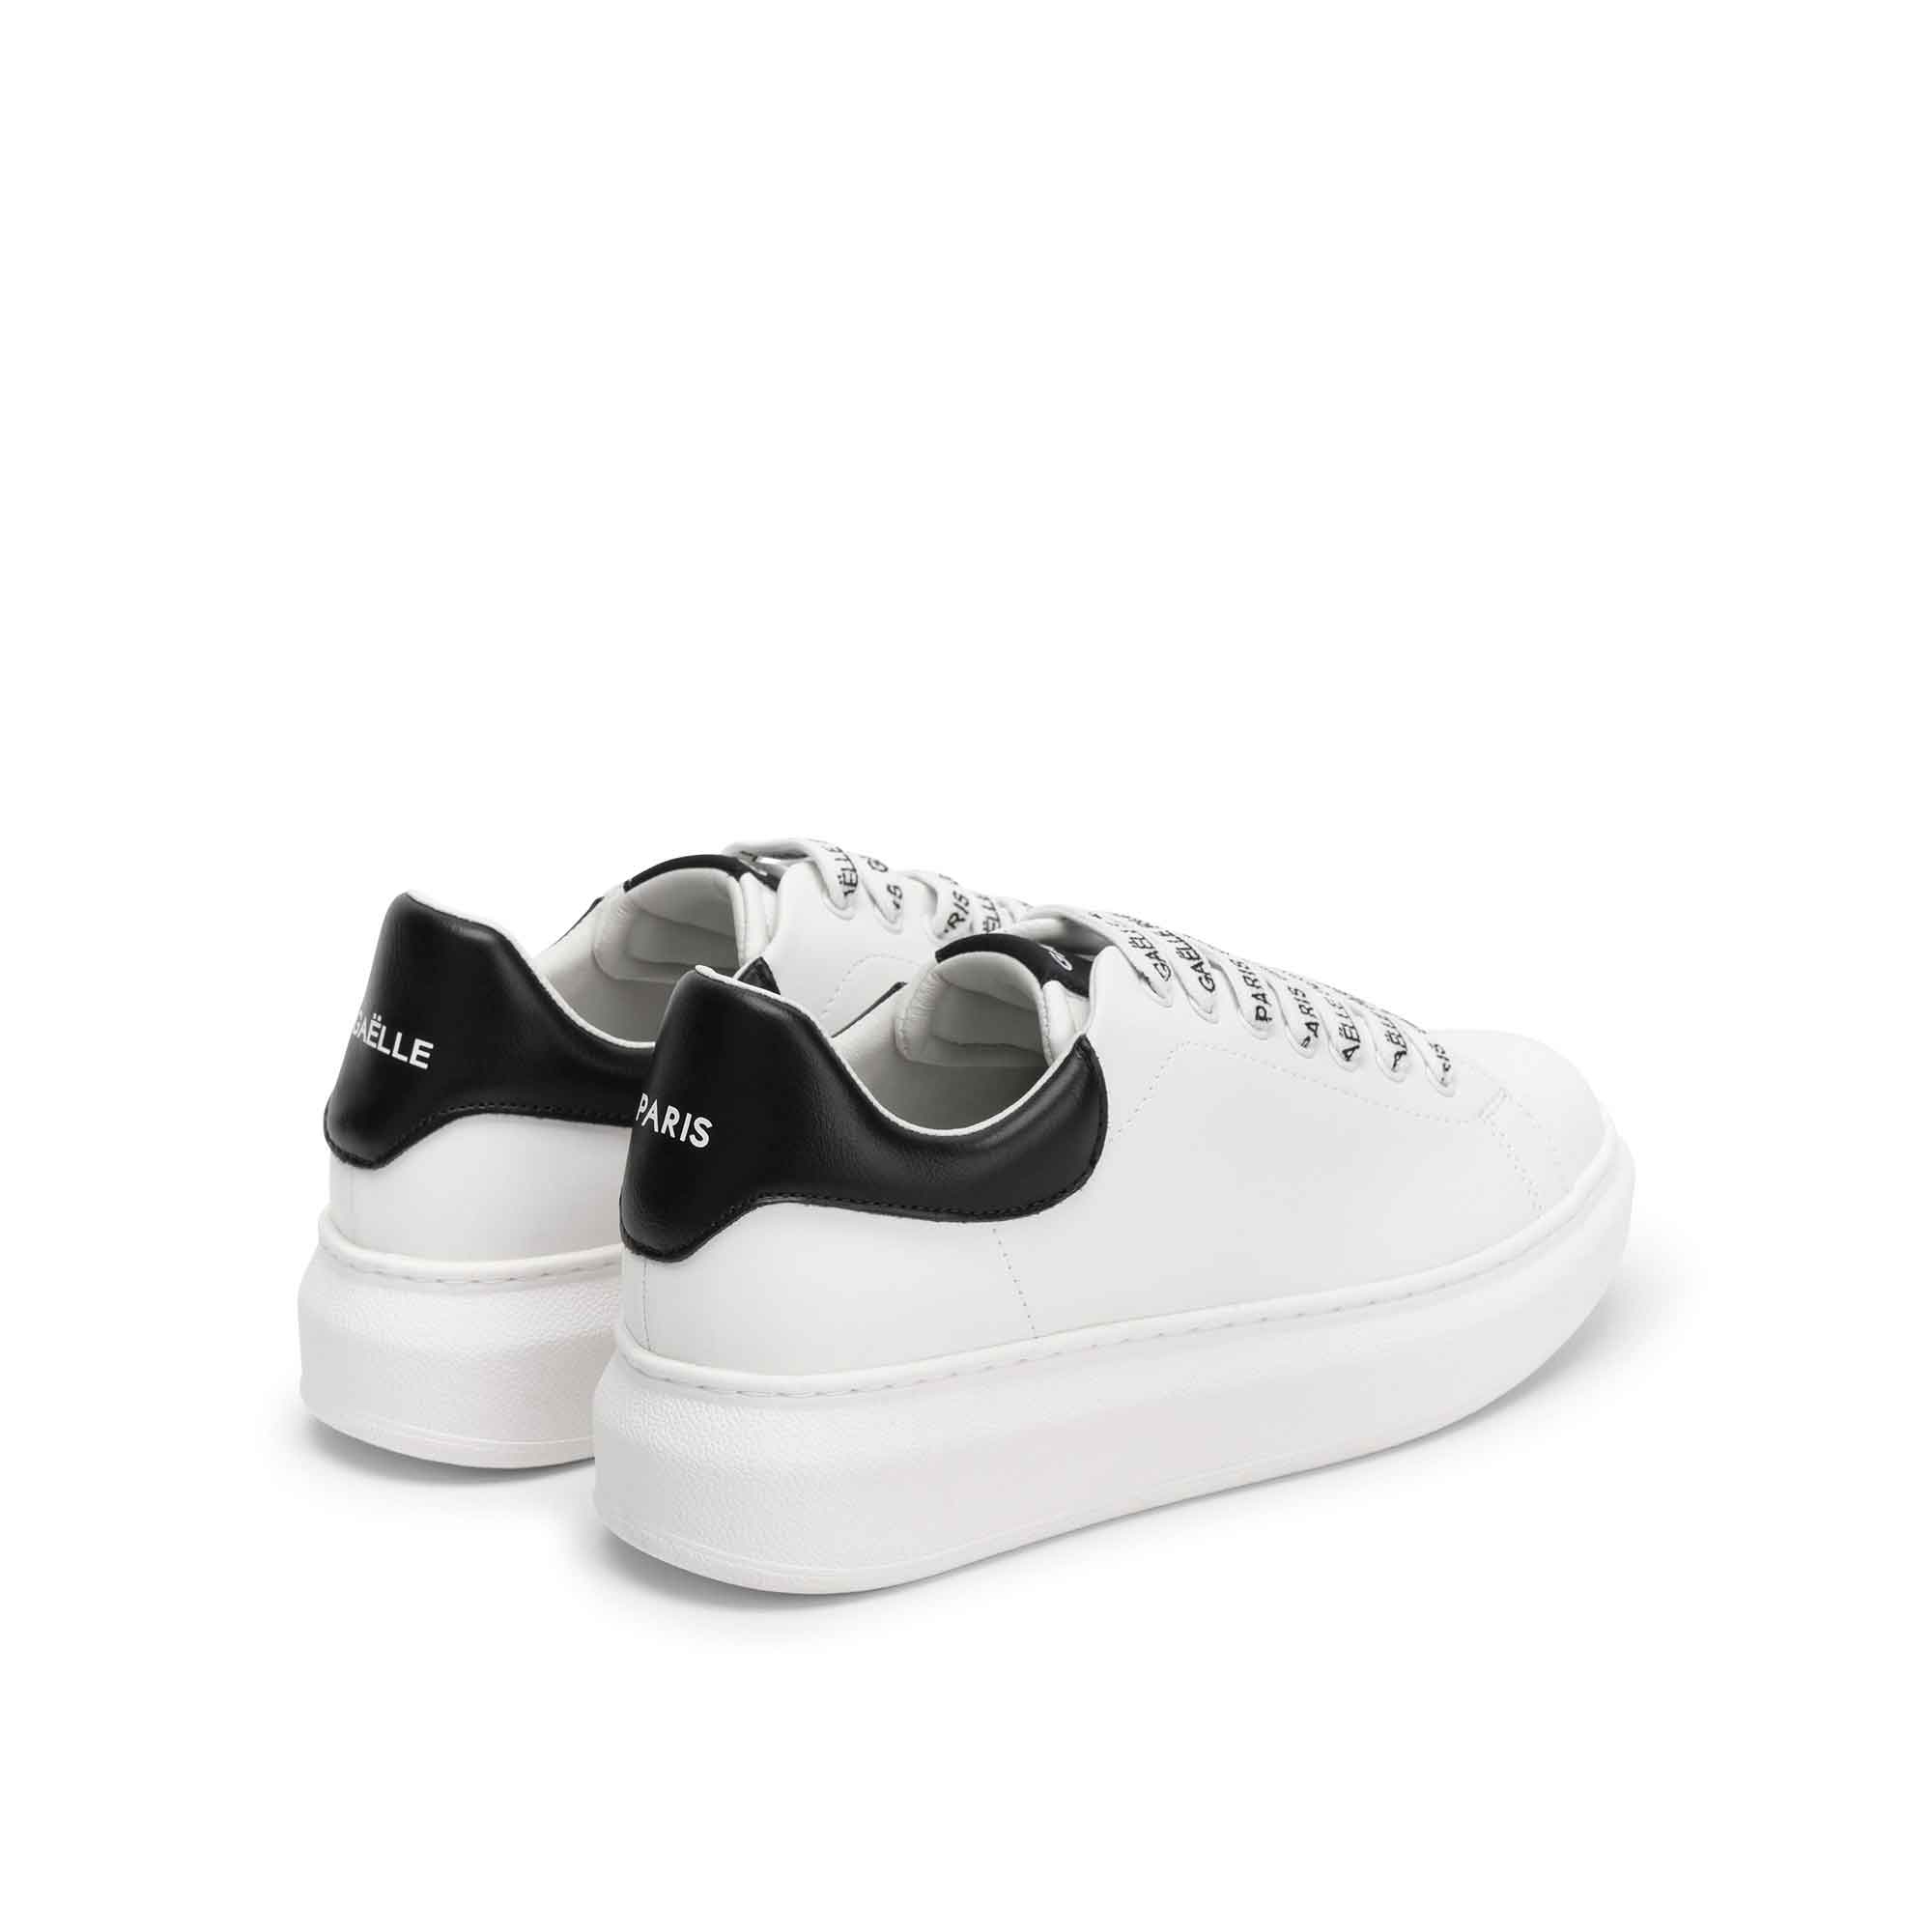 SNEAKERS - GBDA1809 - GAELLE PARIS